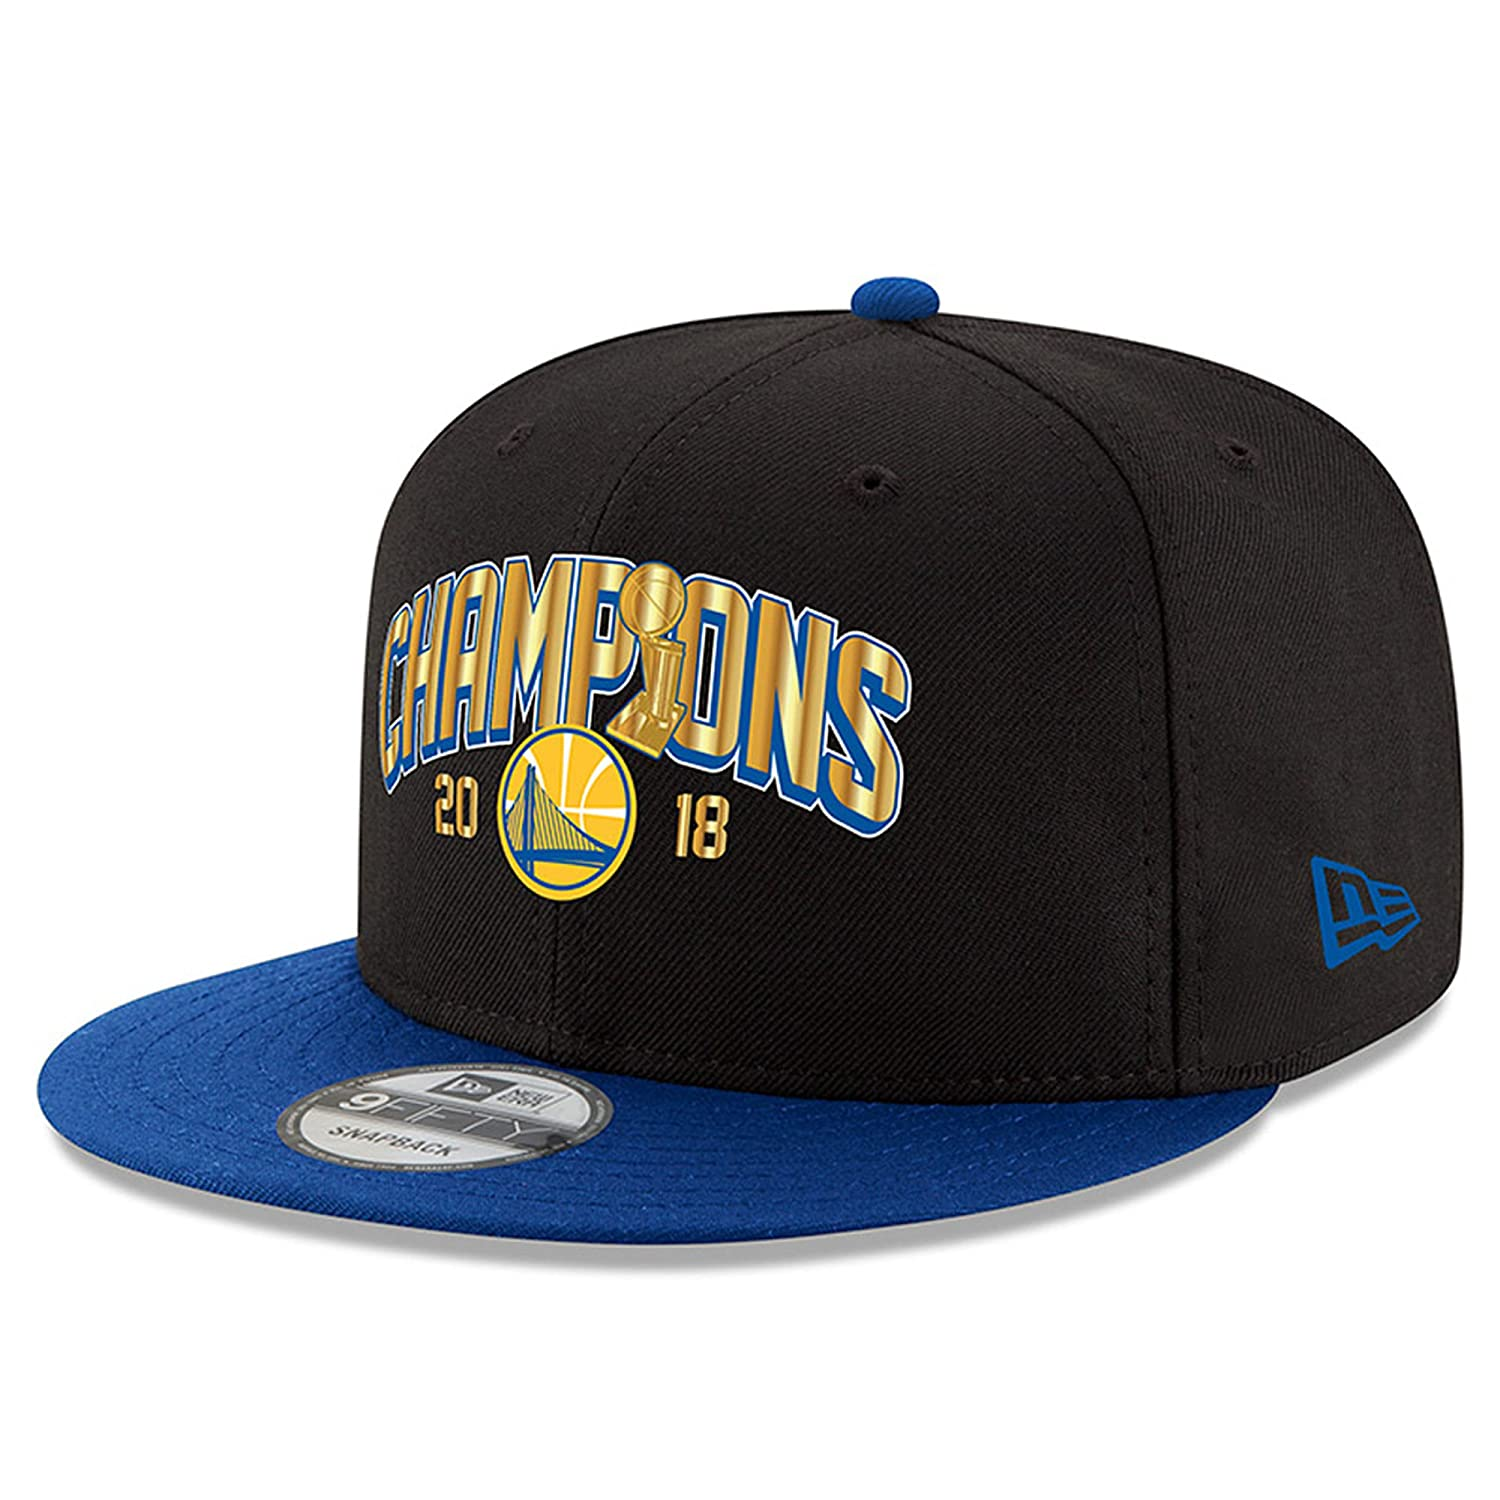 056d36458f0 Amazon.com   Golden State Warriors New Era 2018 NBA Finals Champions Trophy  Two-Tone 9FIFTY Snapback Adjustable Hat Black Royal   Sports   Outdoors